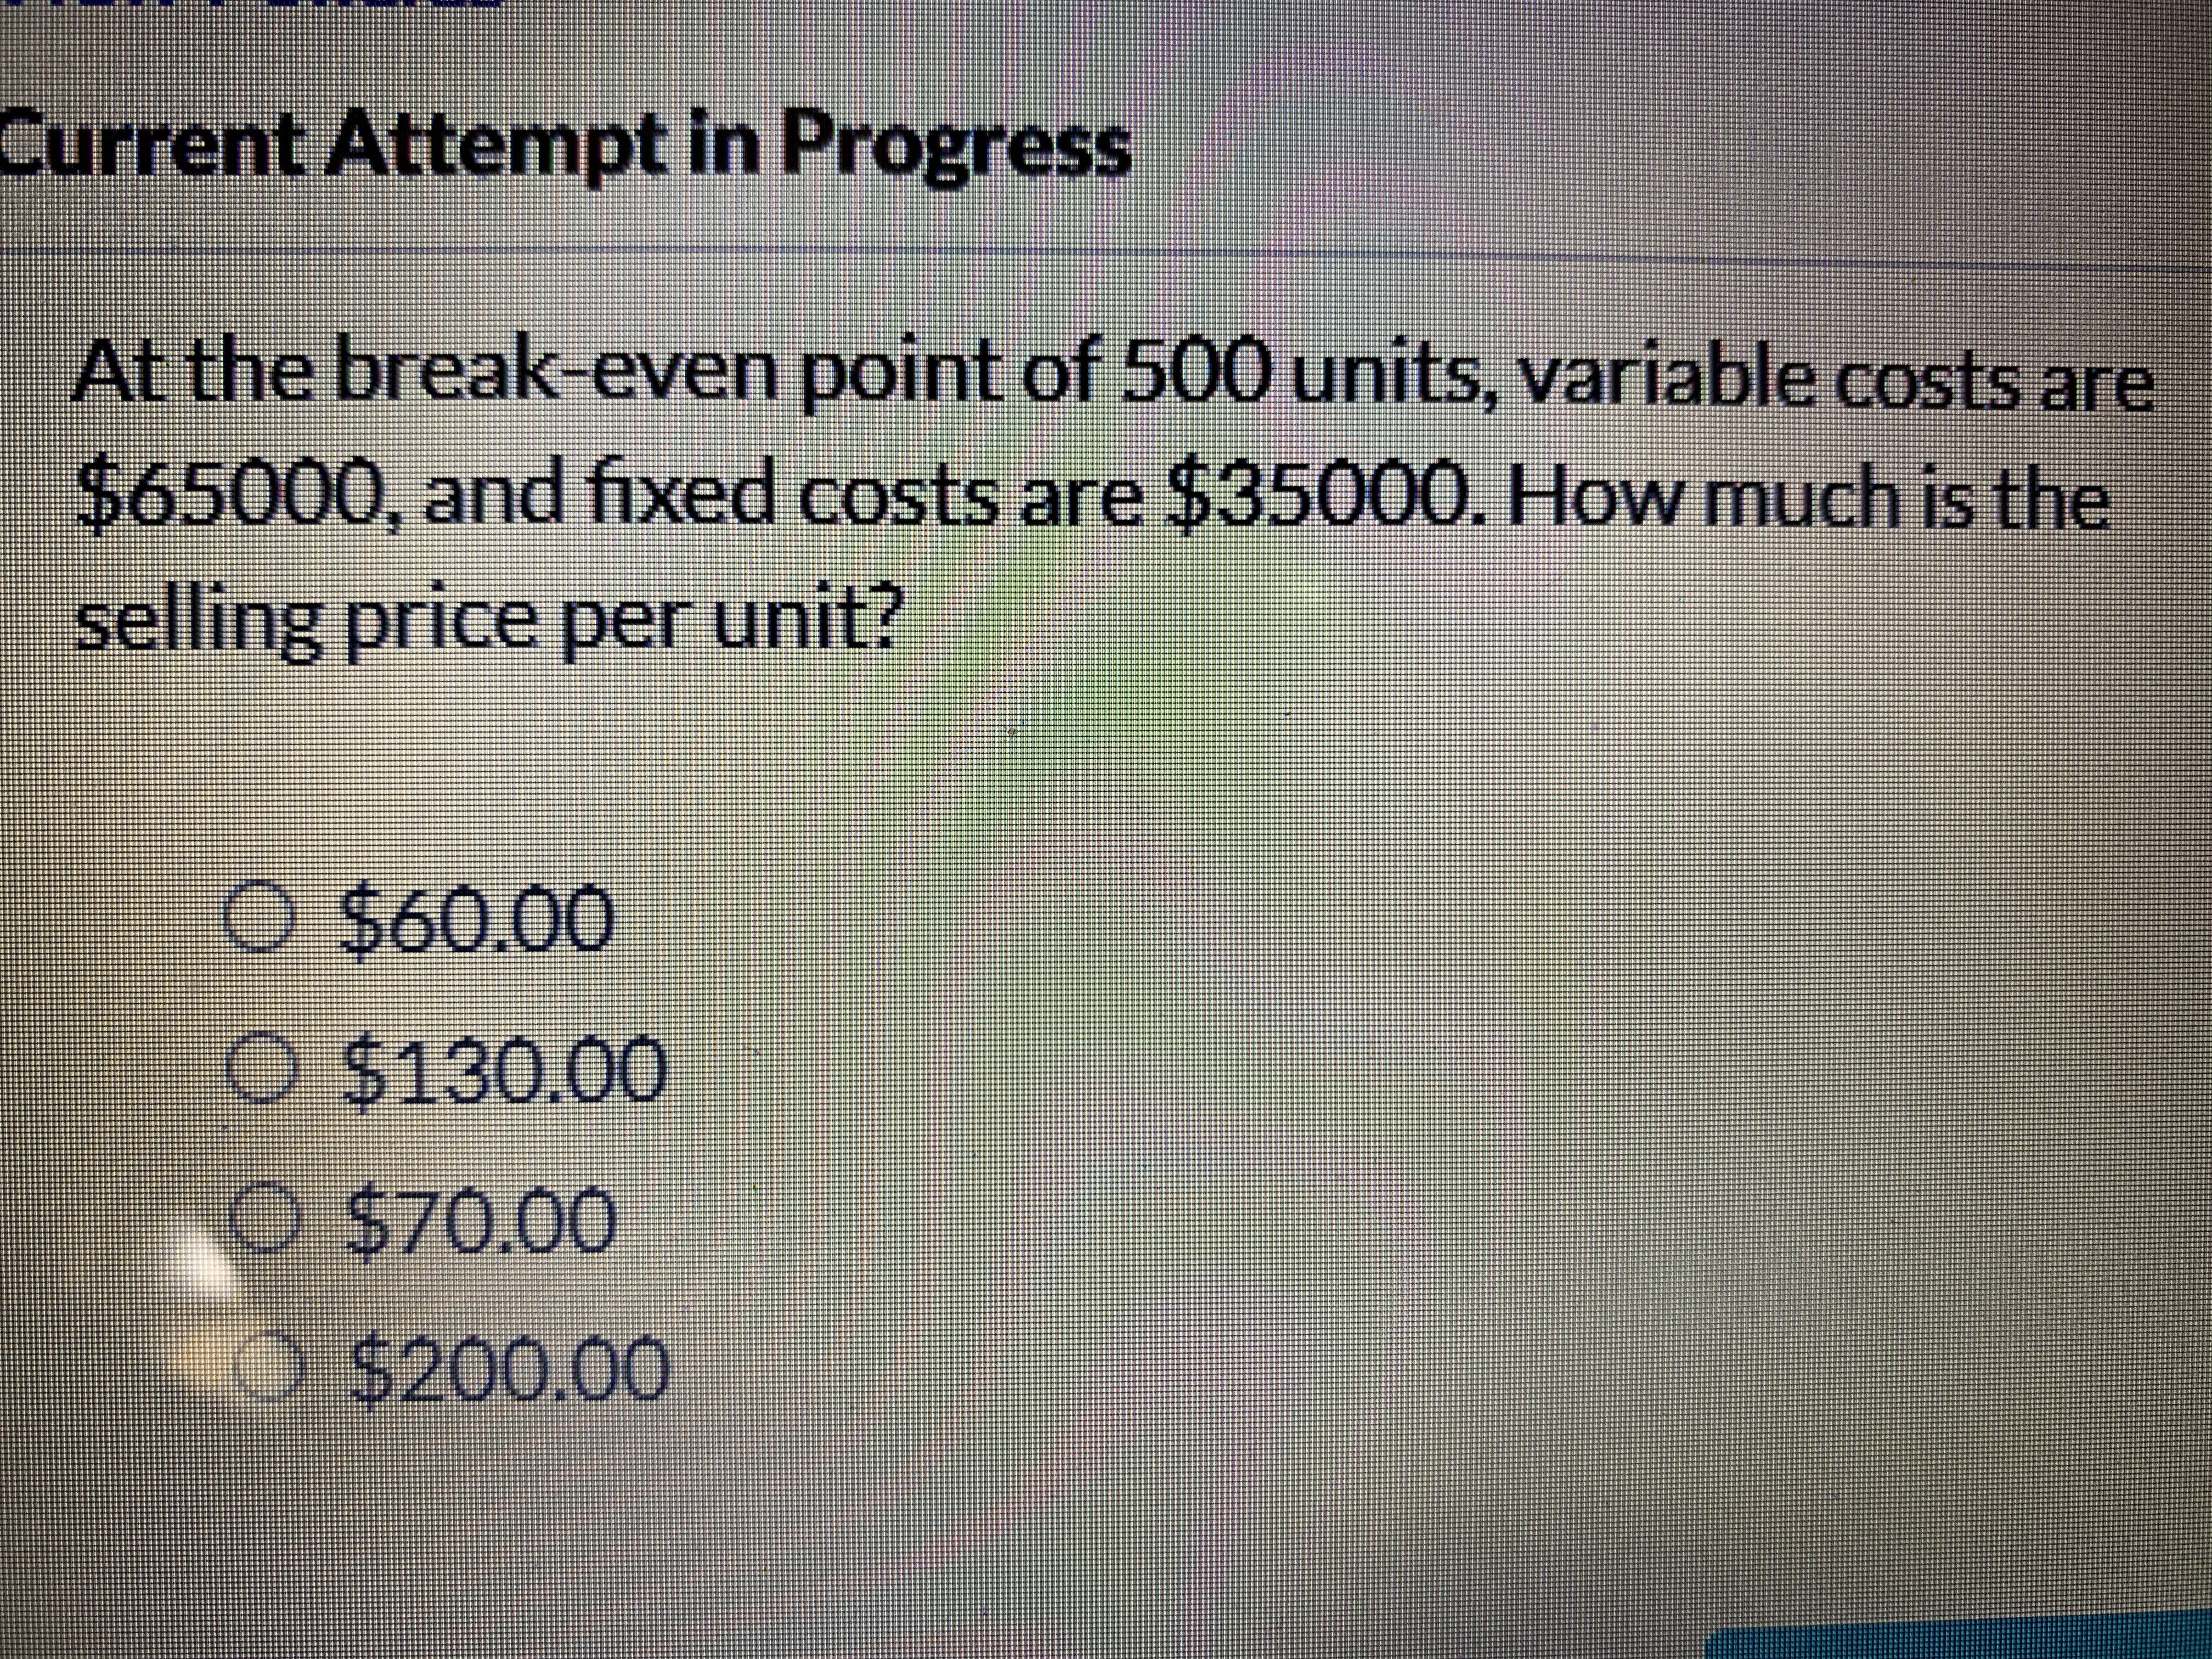 urrent Attempt in Progress At the break even pOint of 500 units, variable costs are $65000, and ixed costs are $3500O. How much is the selling price per unit? O $60.00 O $130.00 O $70.00 O $200.00